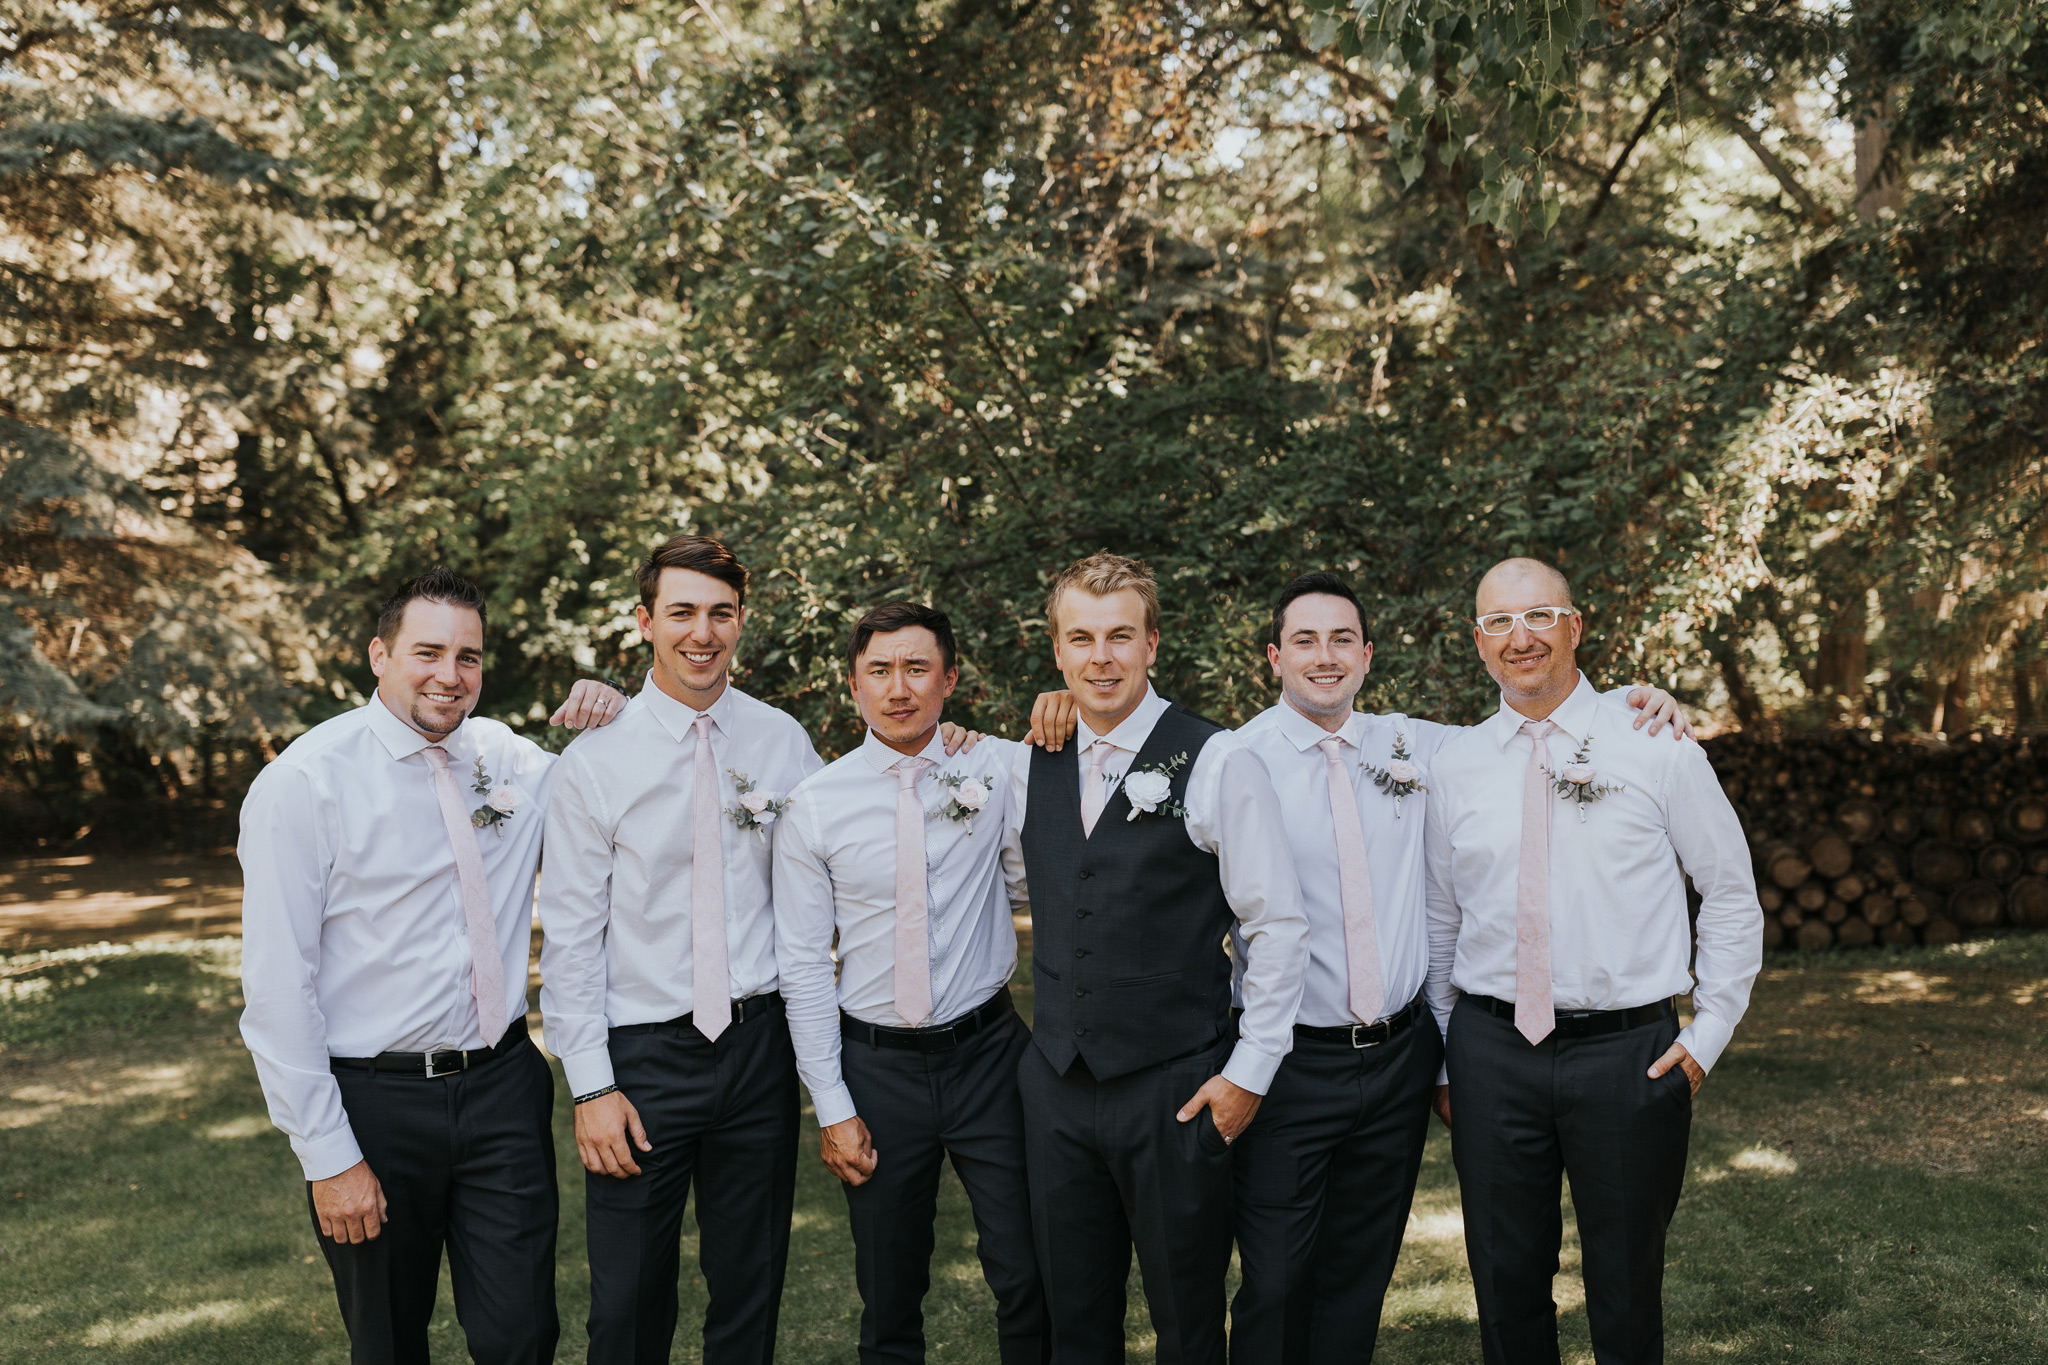 groom poses with groomsmen